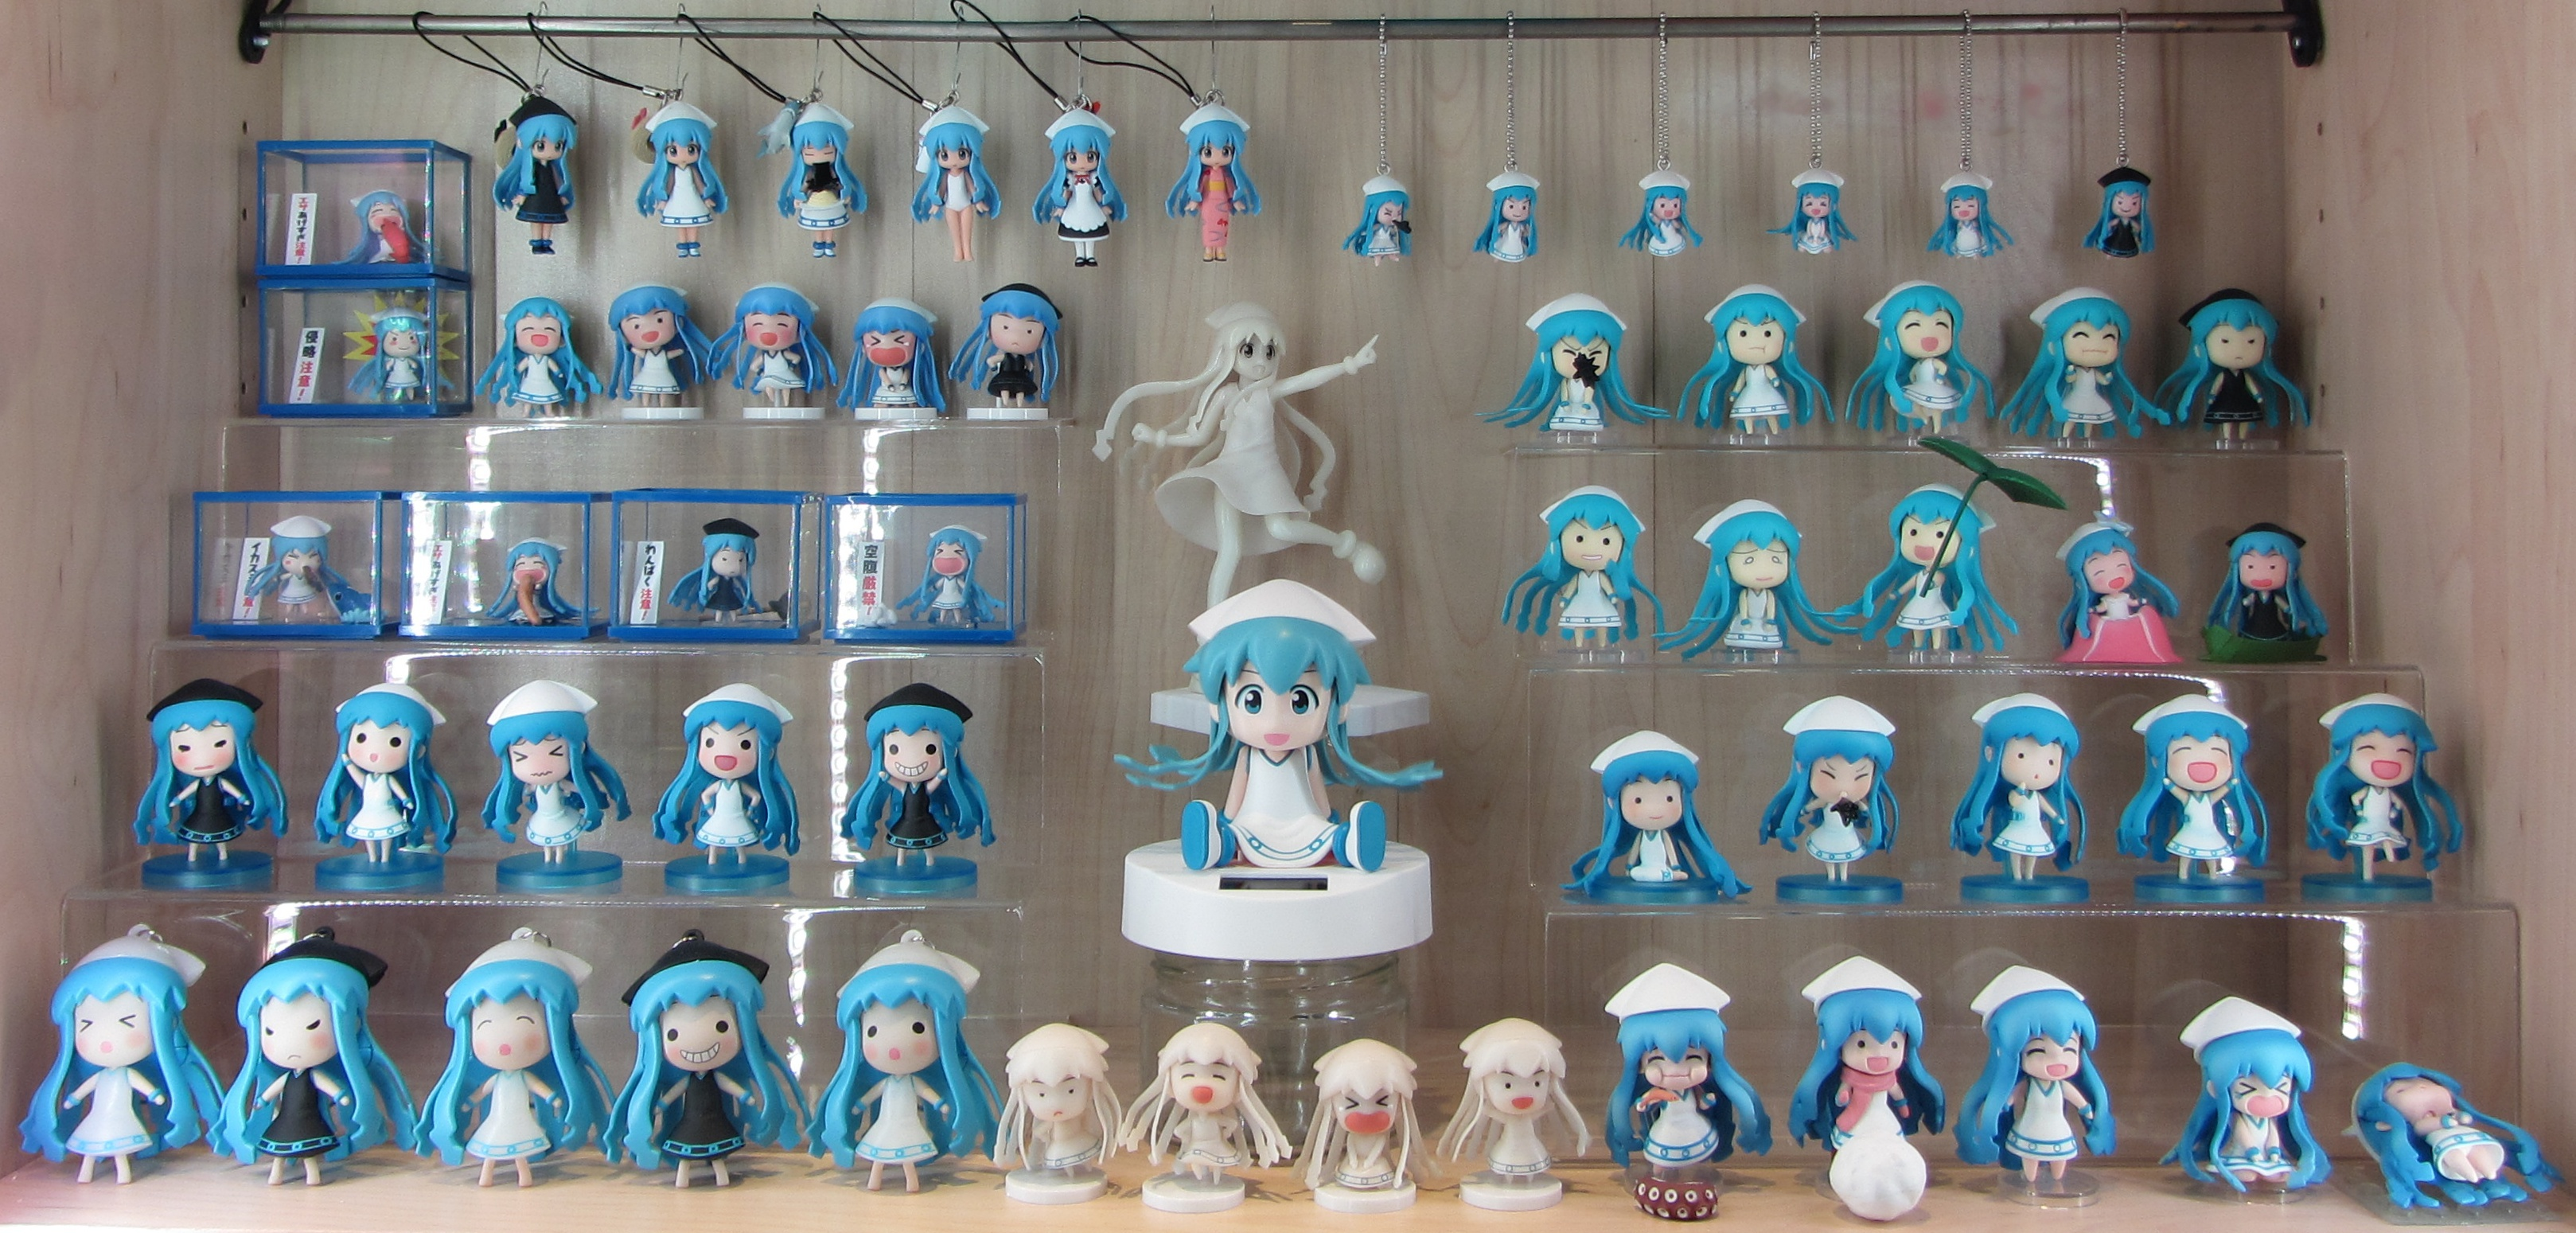 https://static.myfigurecollection.net/upload/pictures/2016/01/04/1447567.jpeg